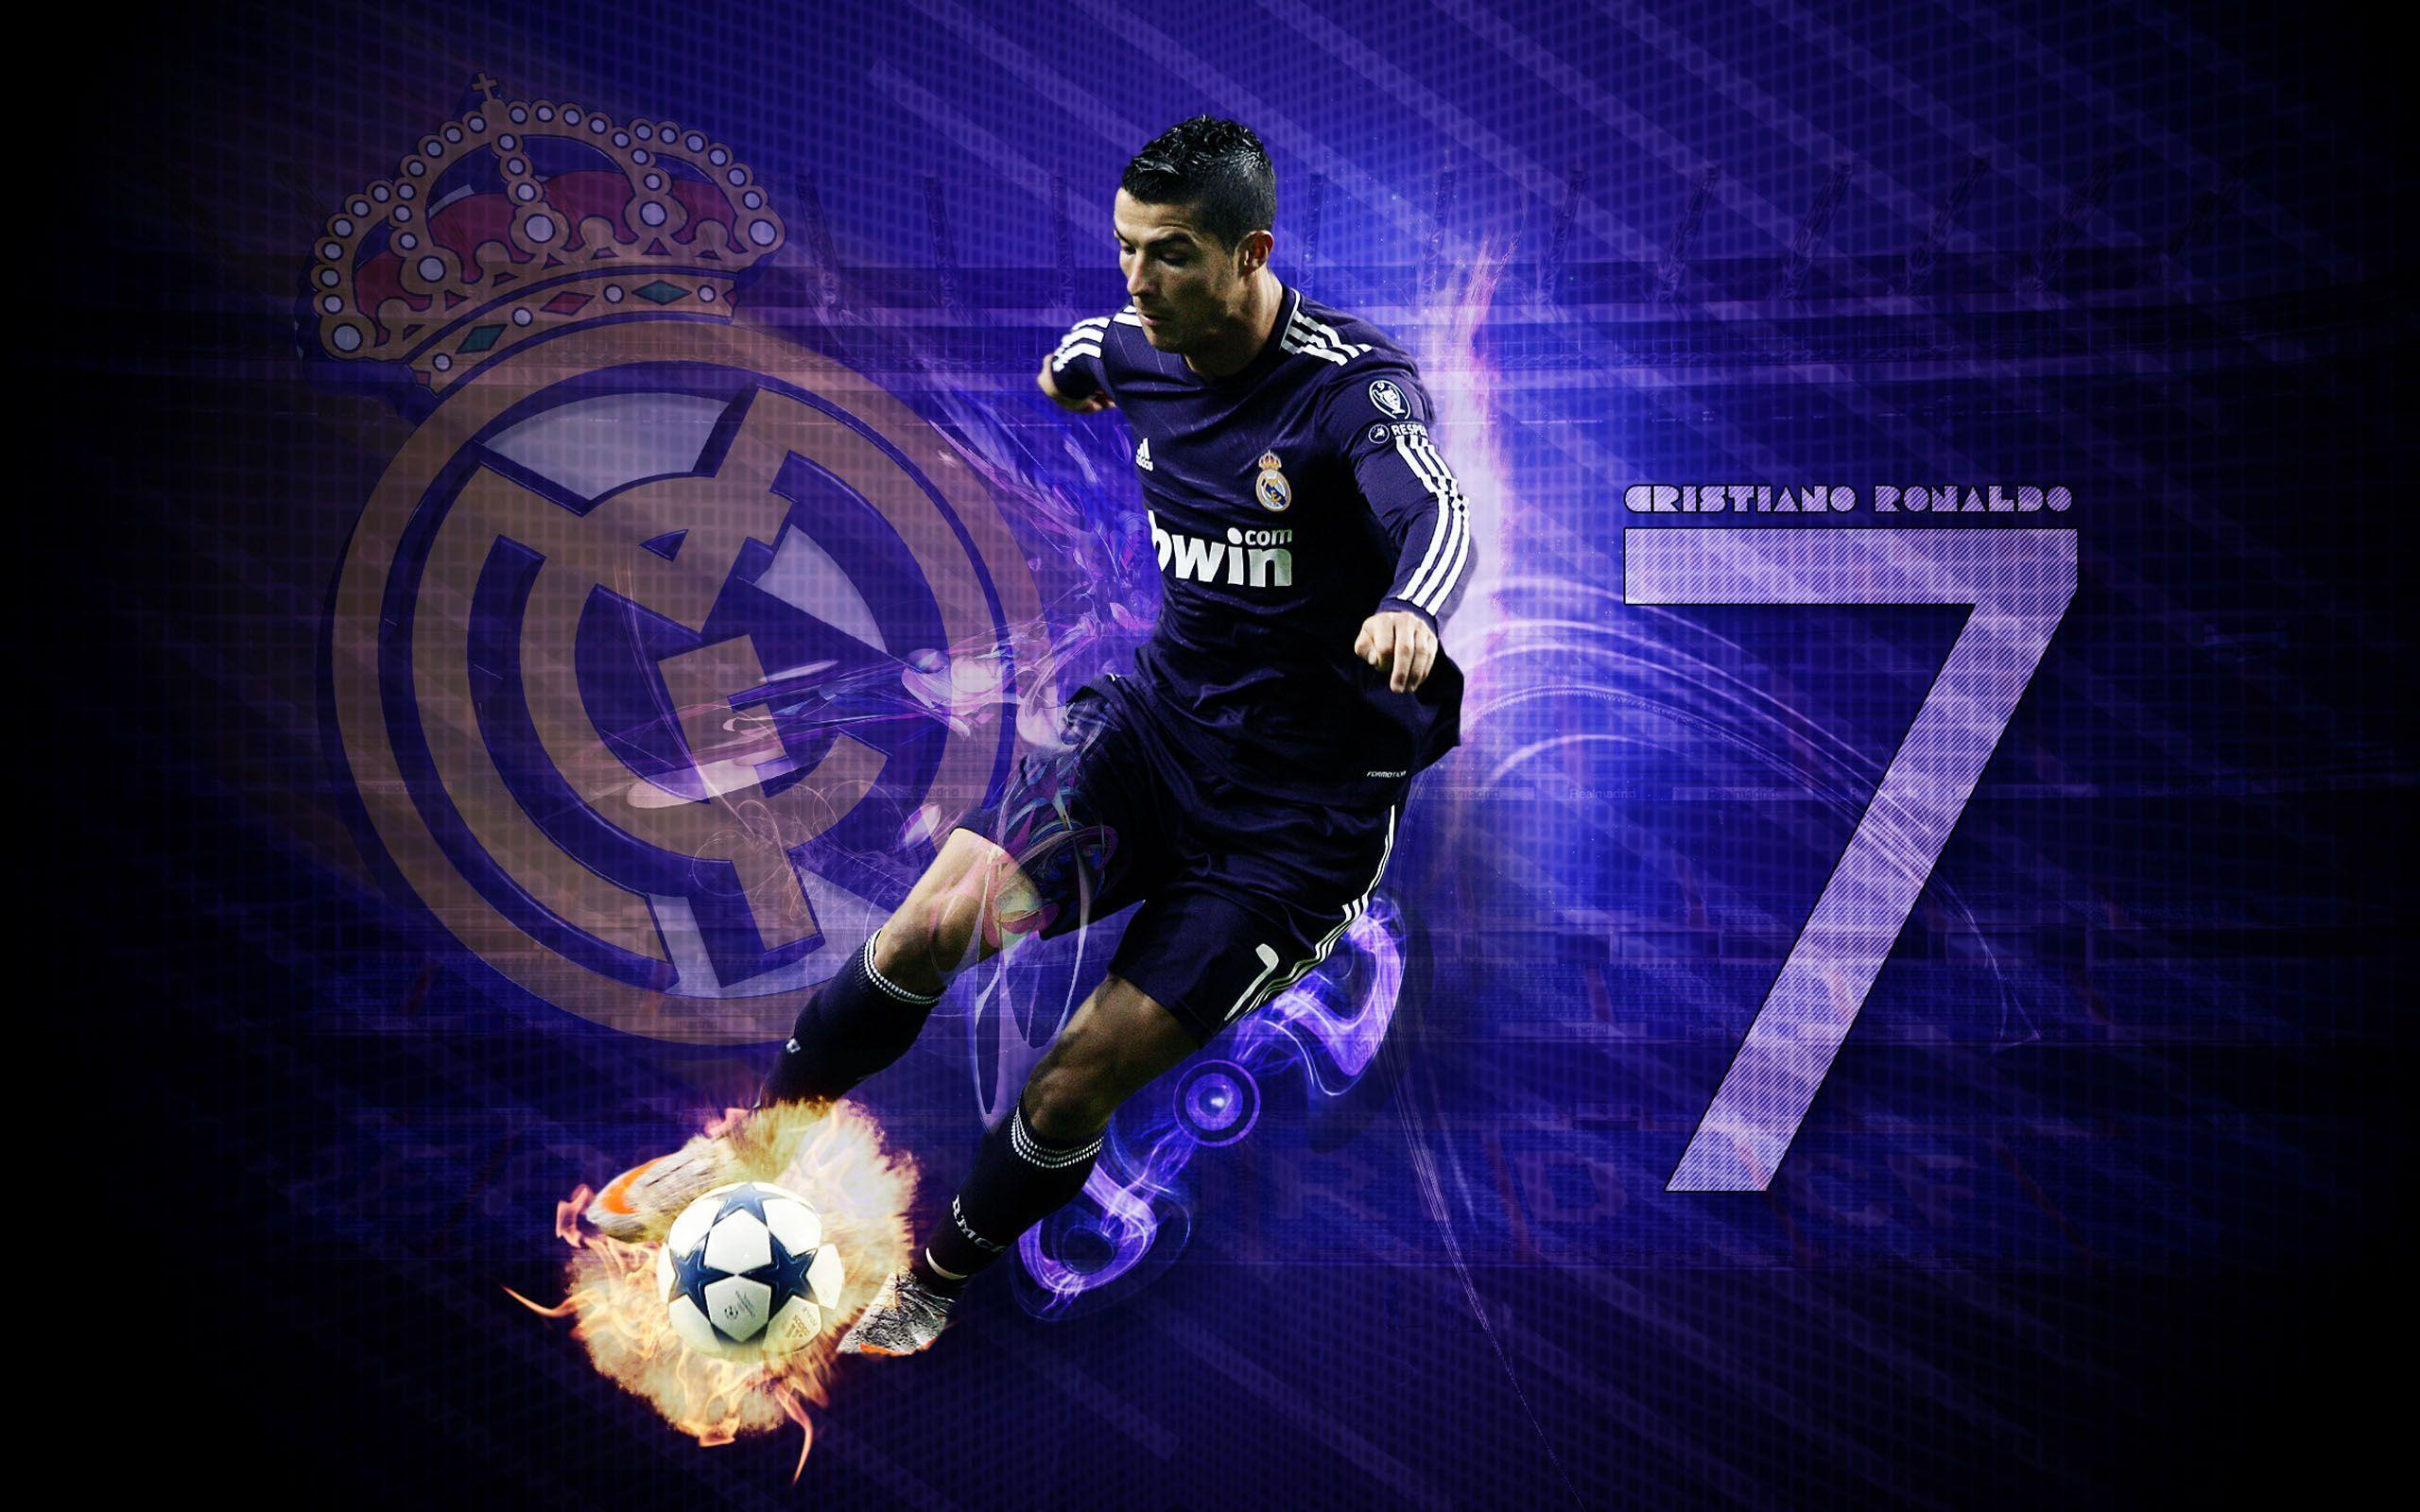 Collection Of Best Real Madrid Wallpaper On Wall Papers